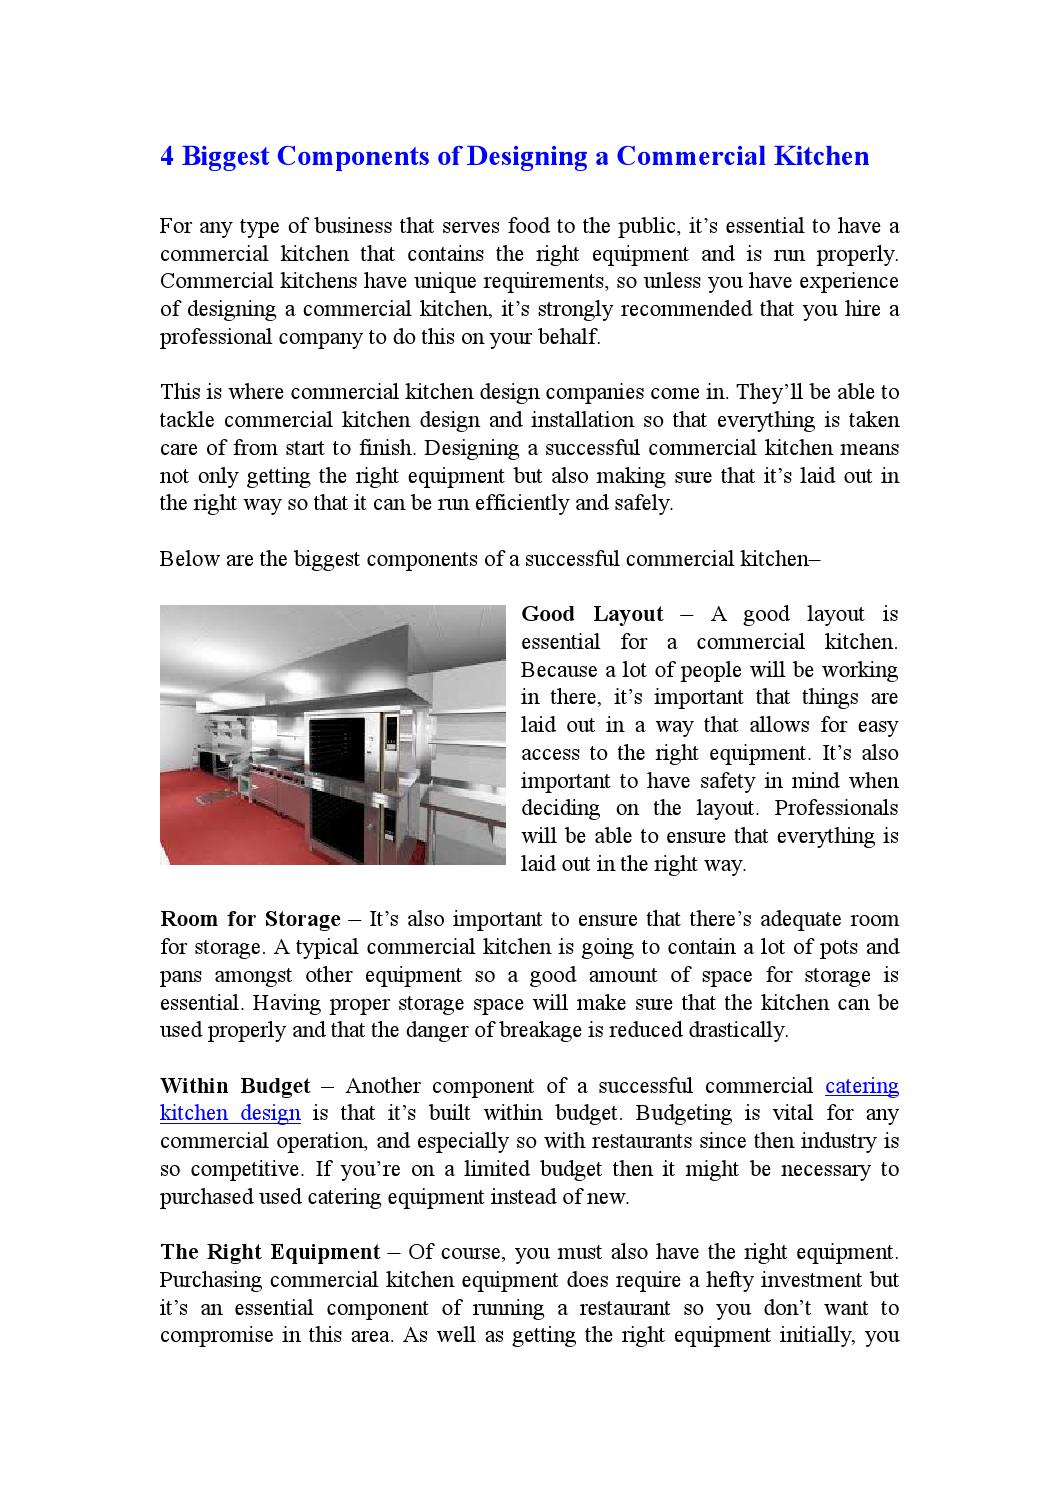 The Biggest components of a Successful Commercial Kitchen by ...